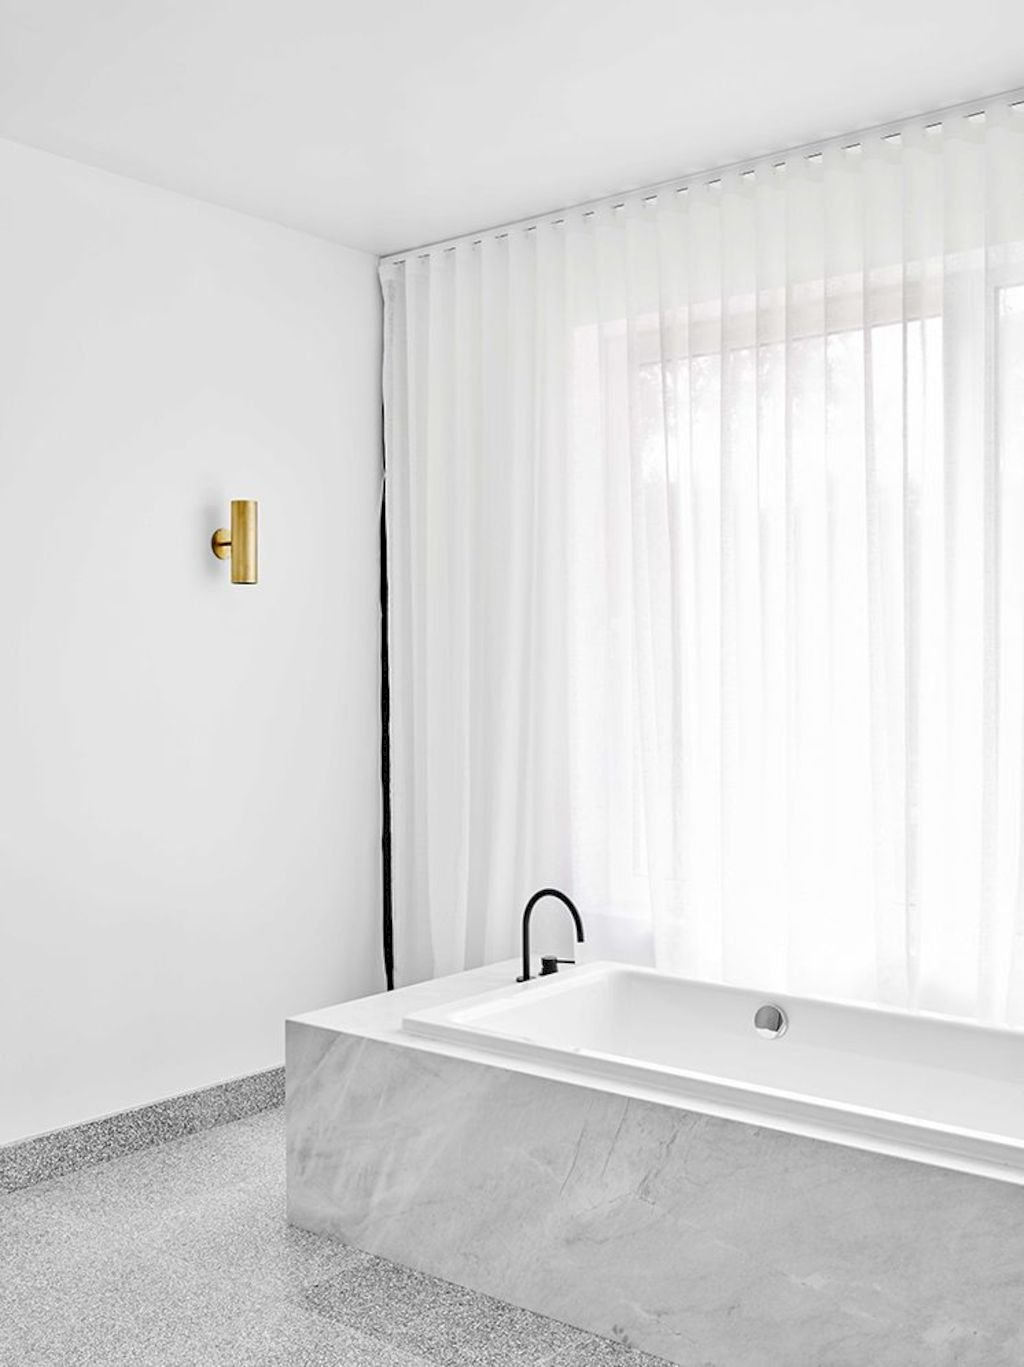 Creative bathroom updates mixing modern trend with simple 60s terrazzo style giving a brilliant contemporary balance Image 15